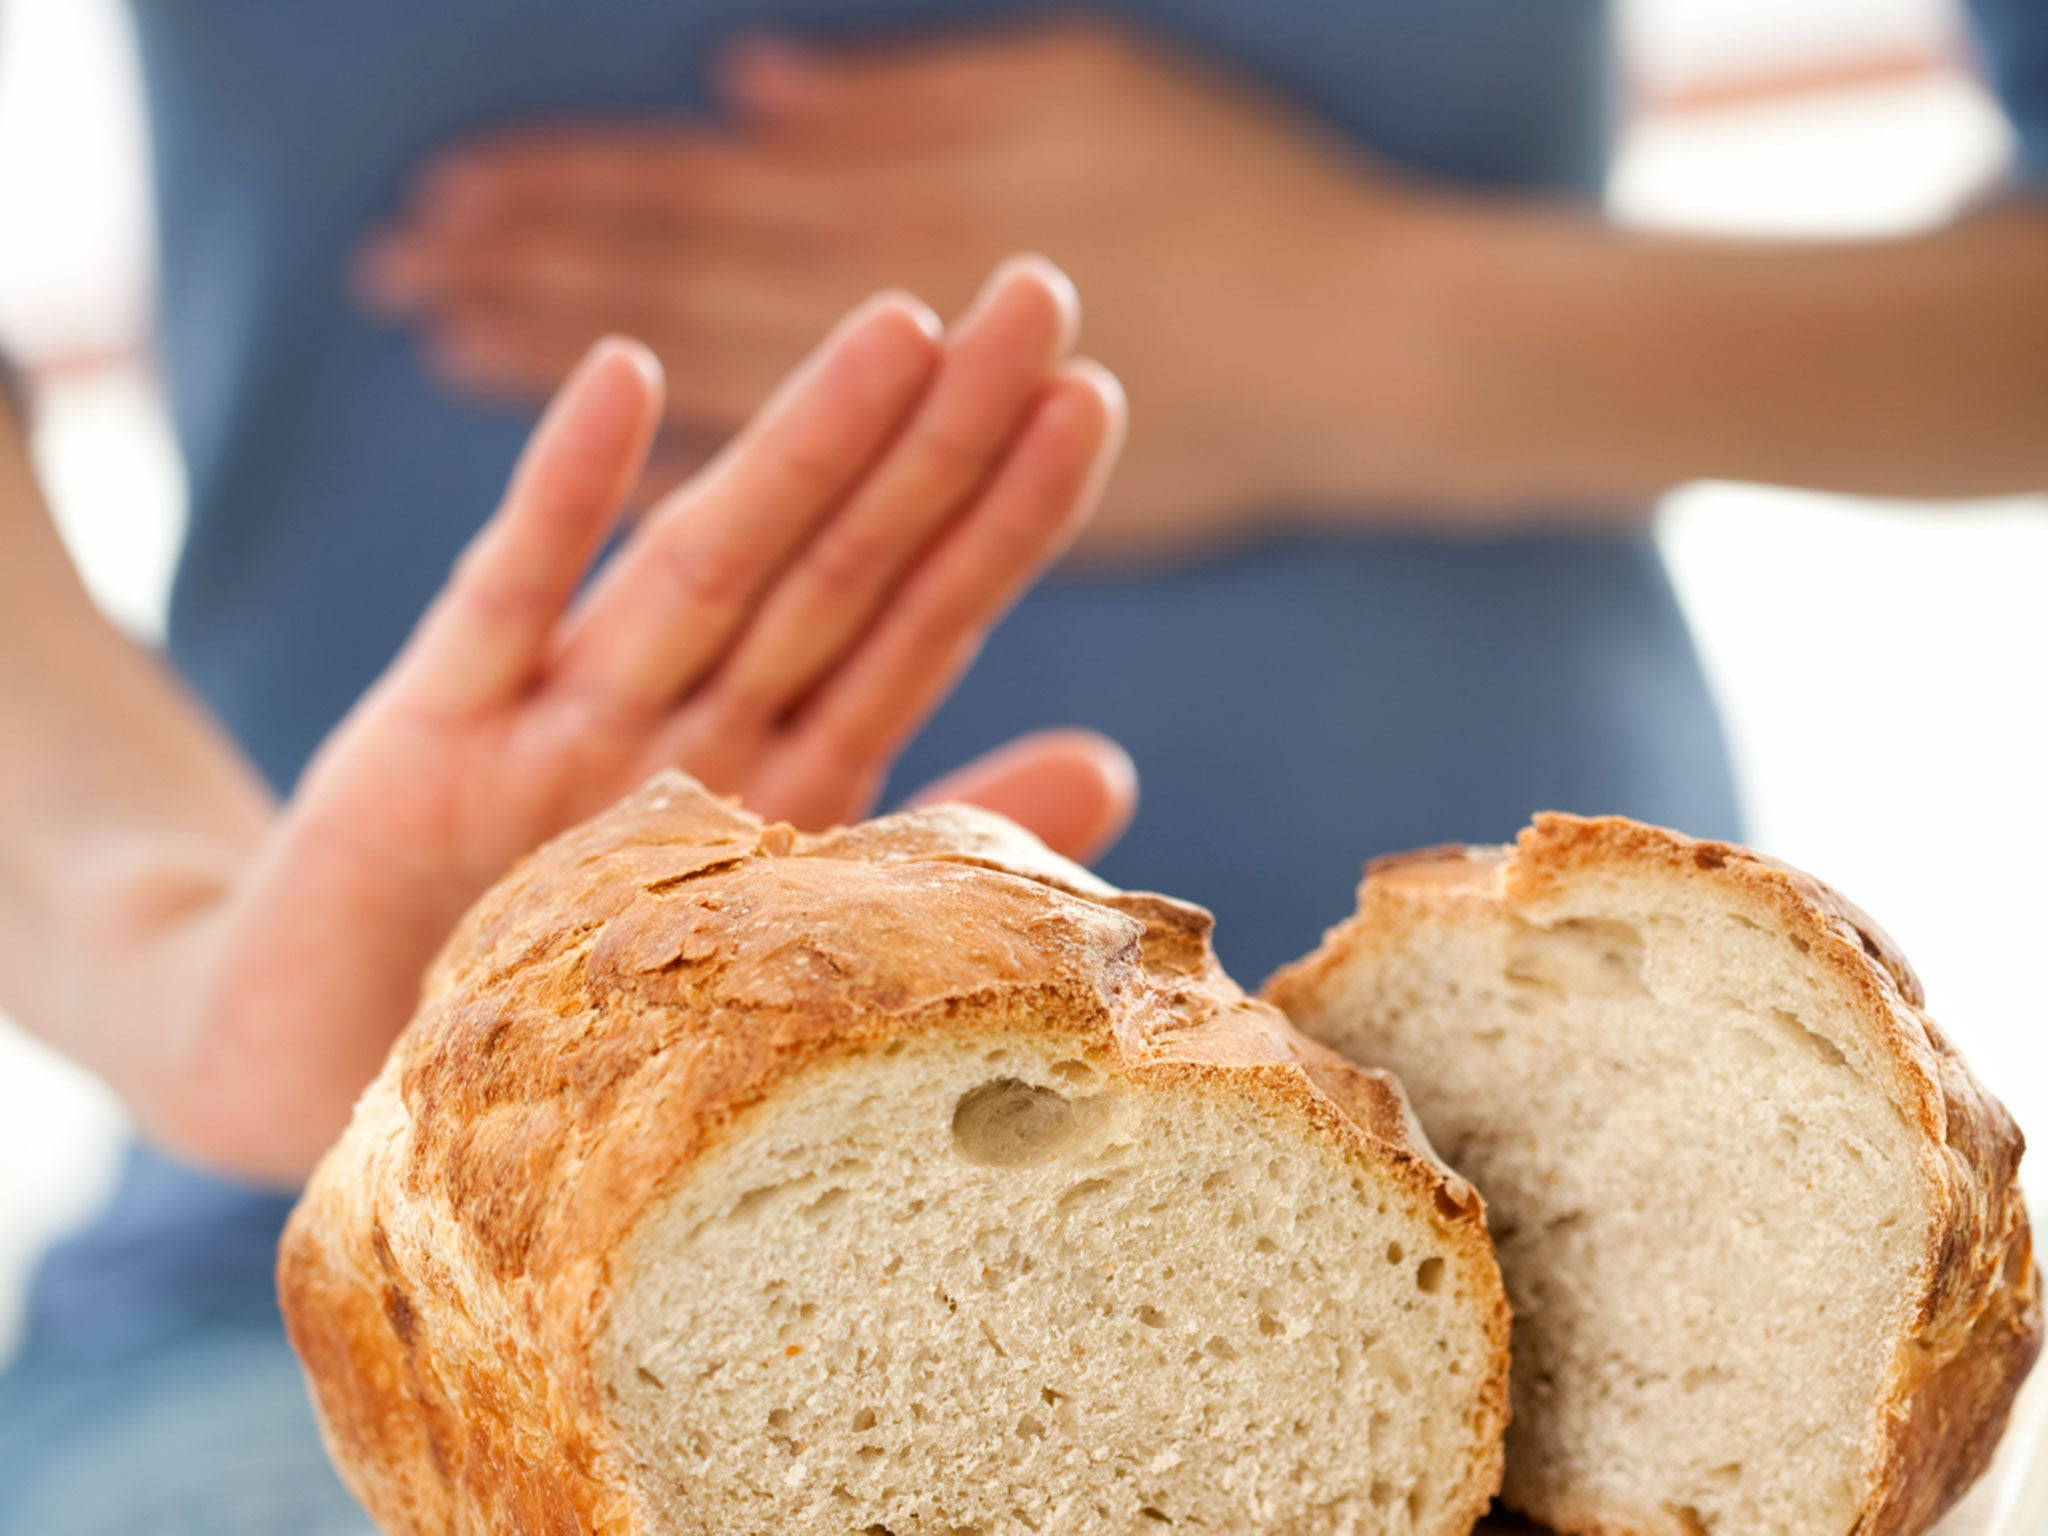 Gluten-free diets could be harmful for those who don't need them, expert warns | Health News | Lifestyle | The Independent